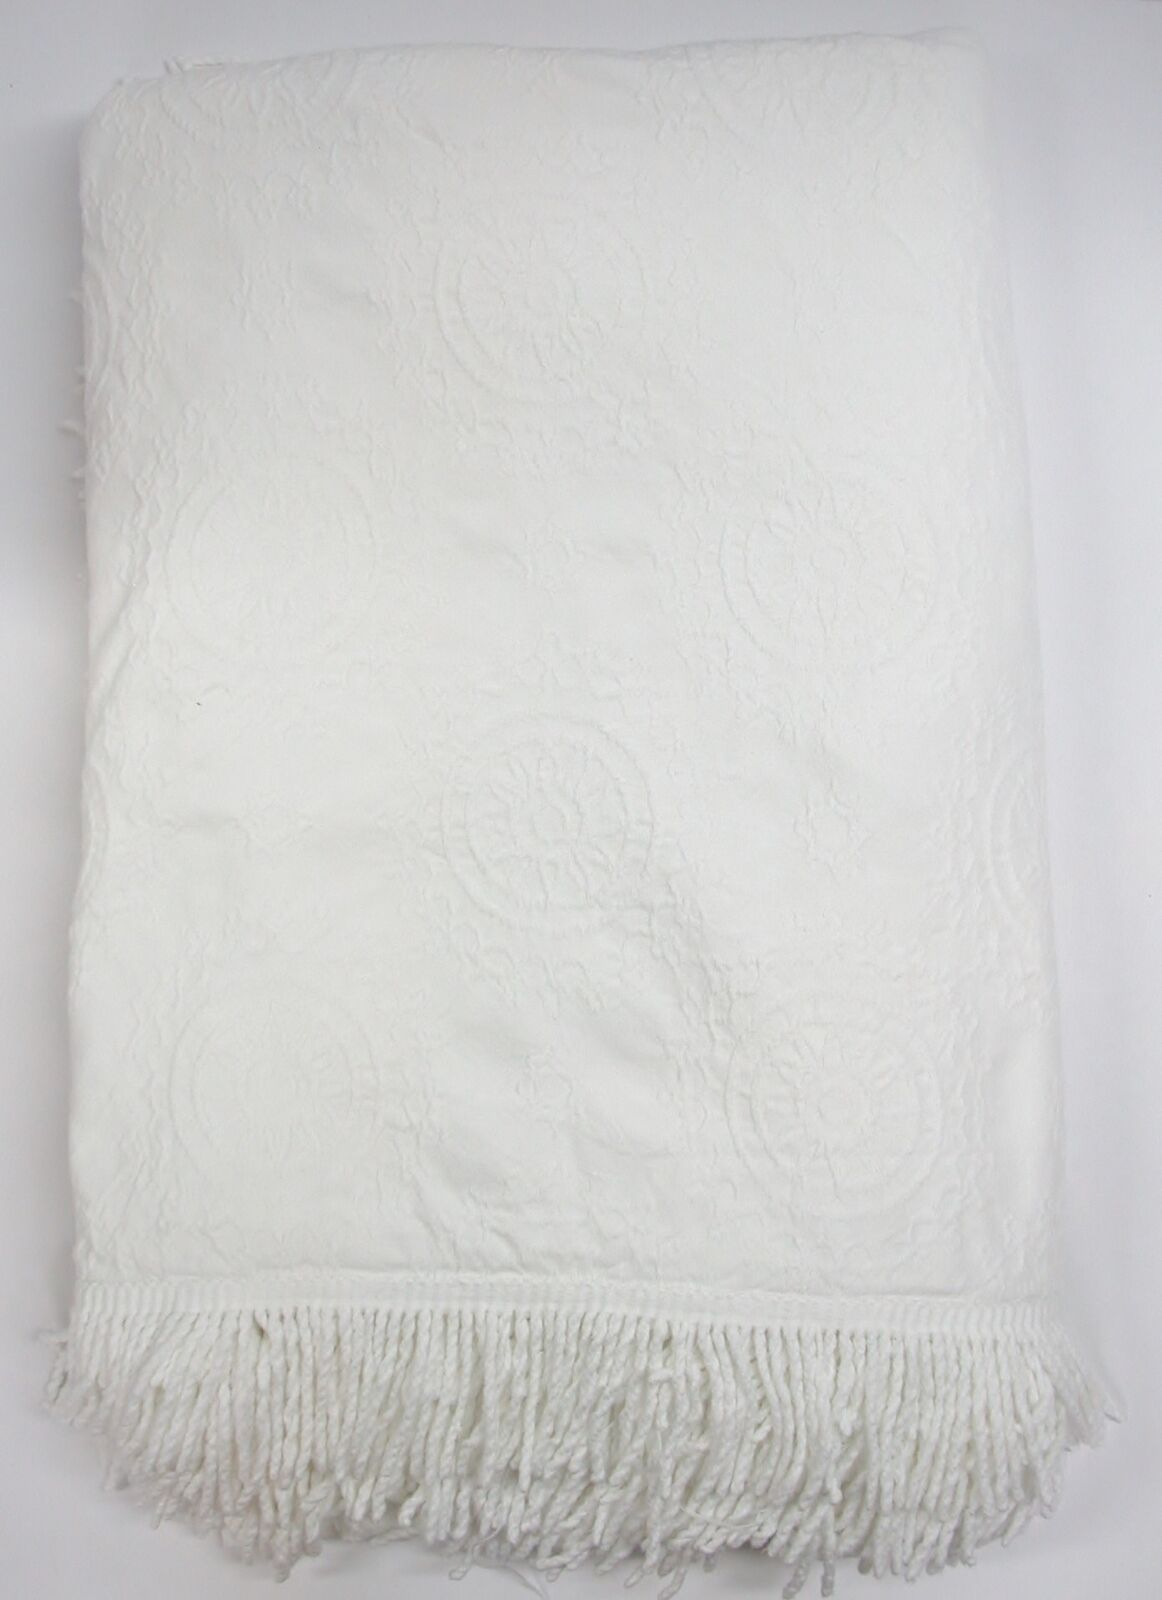 100% Cotton Woven Heirloom Style Fringed Bedspread  White  86  W x 104  L